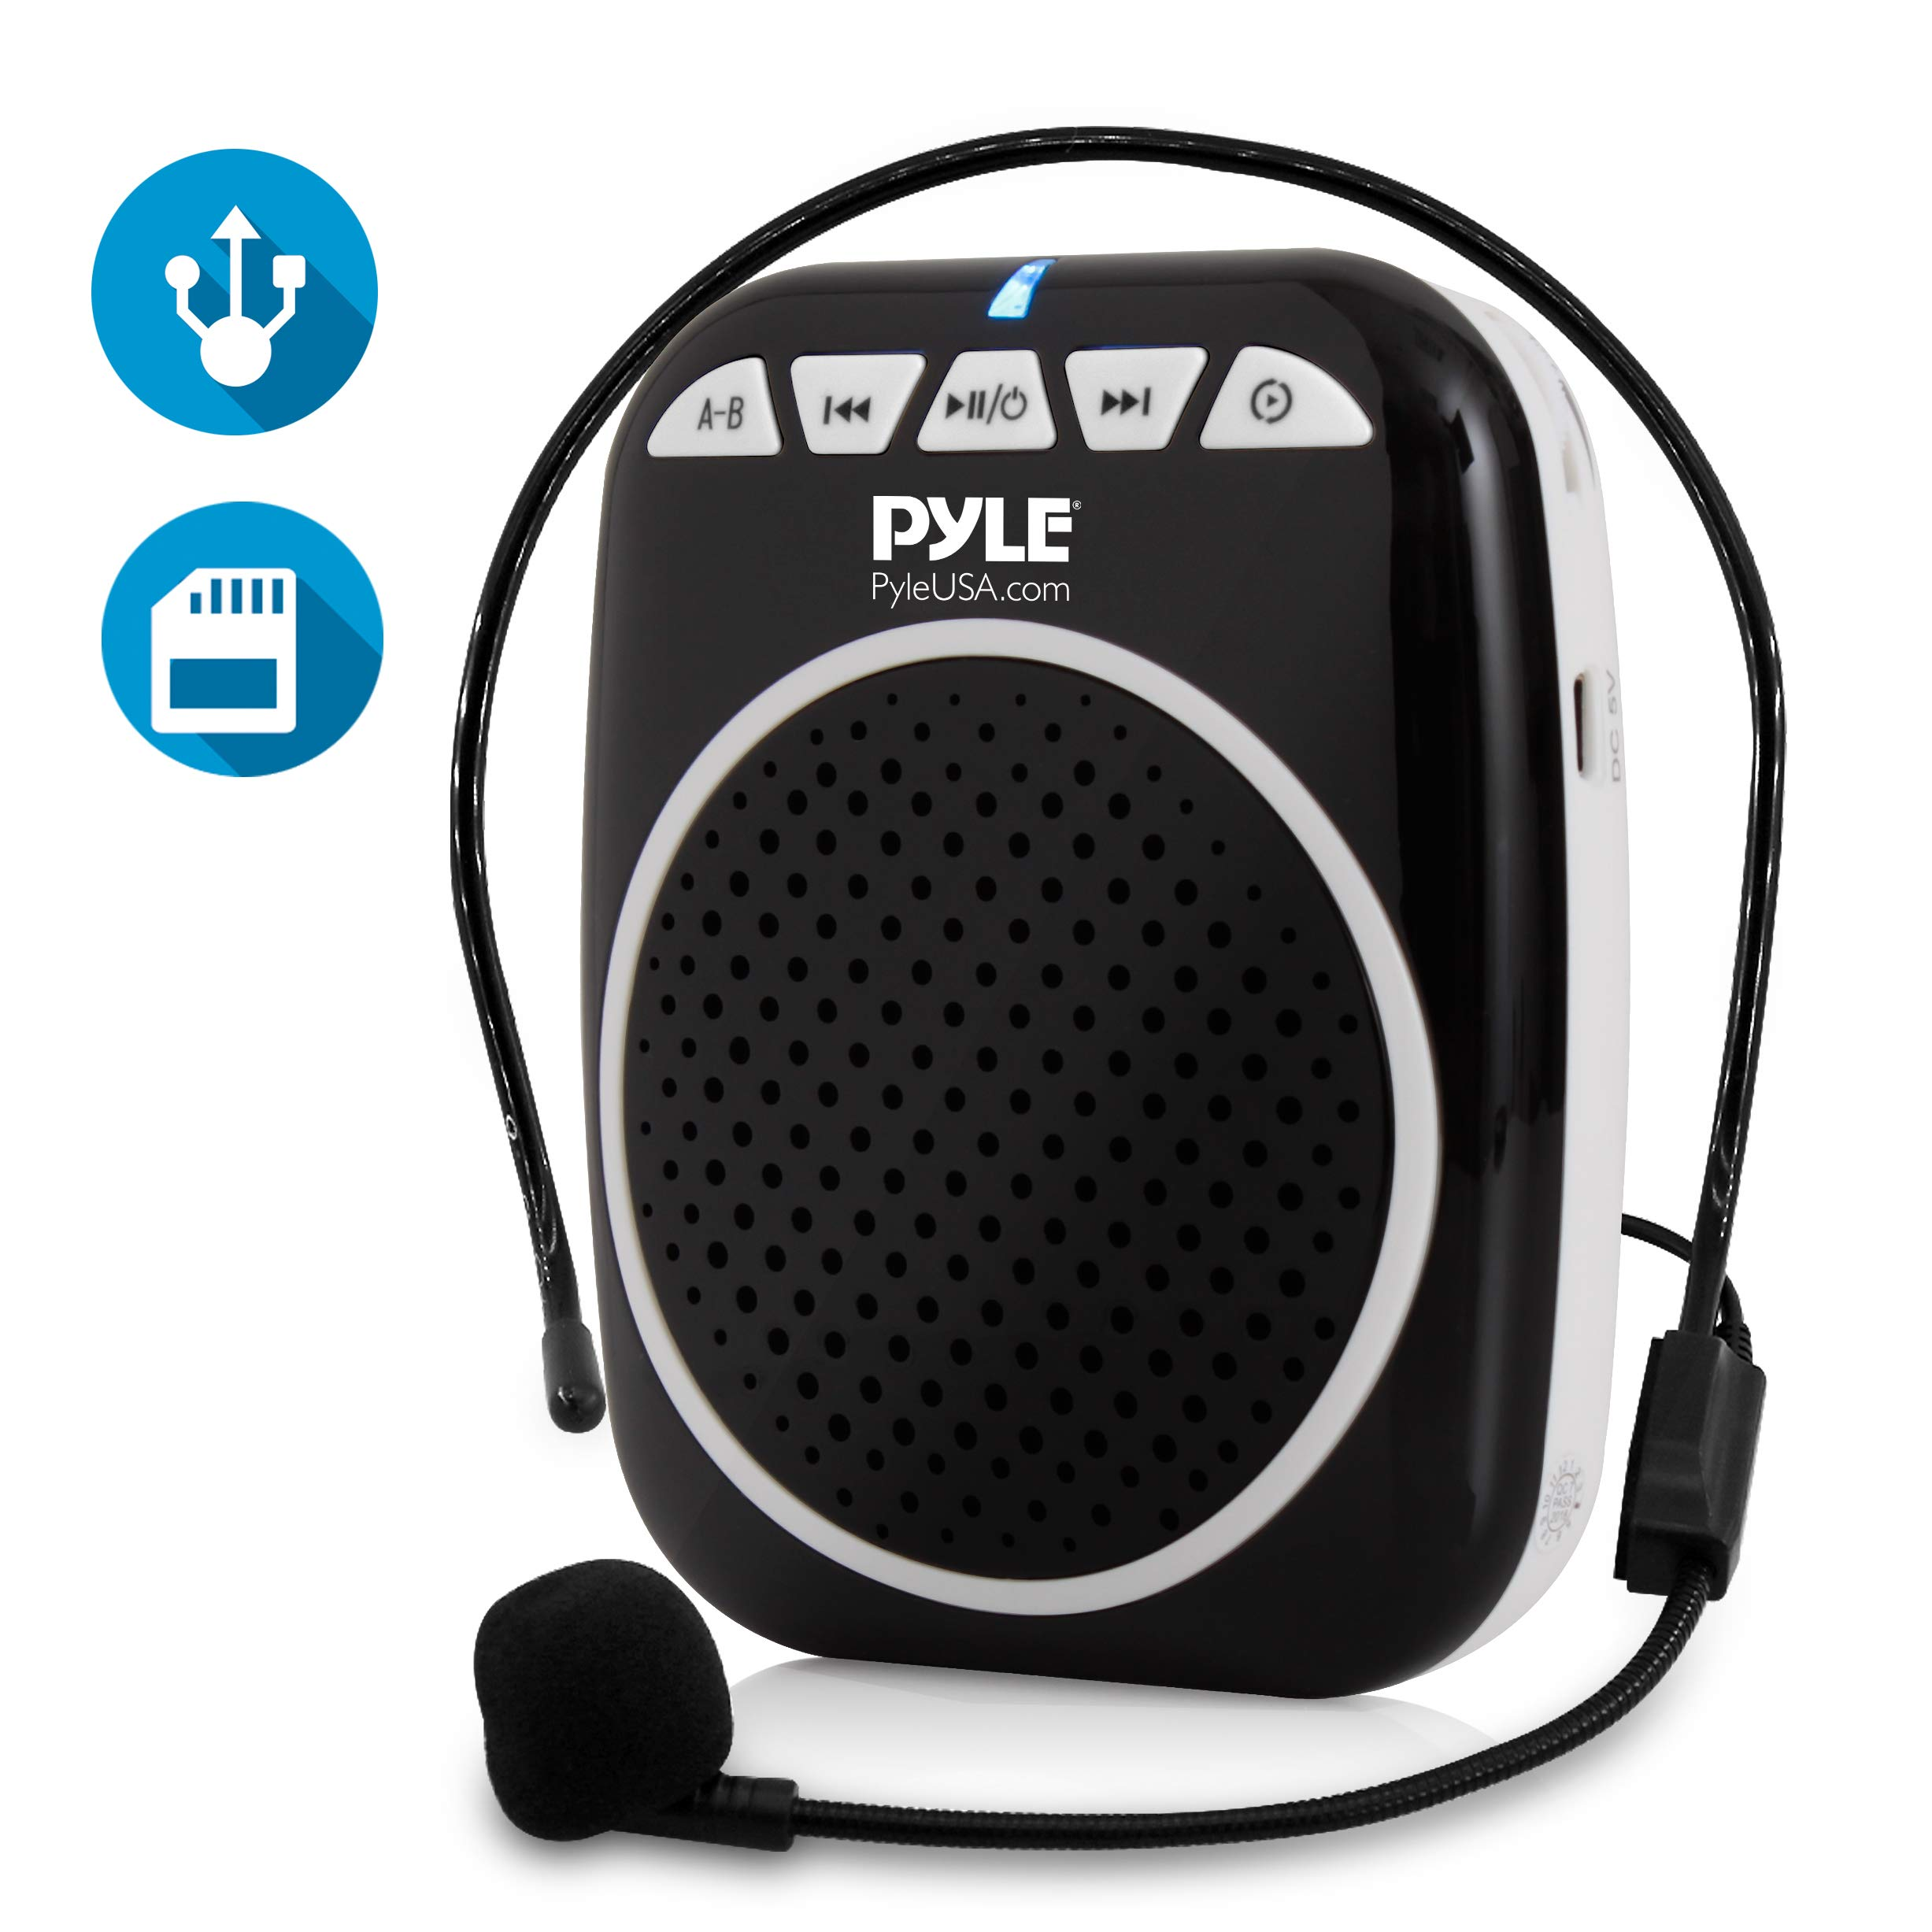 Pyle Compact Voice Amplifier - Portable Waistband PA Speaker with Headset Microphone, Rechargeable Battery, MP3/USB/SD Readers (PWMA55)